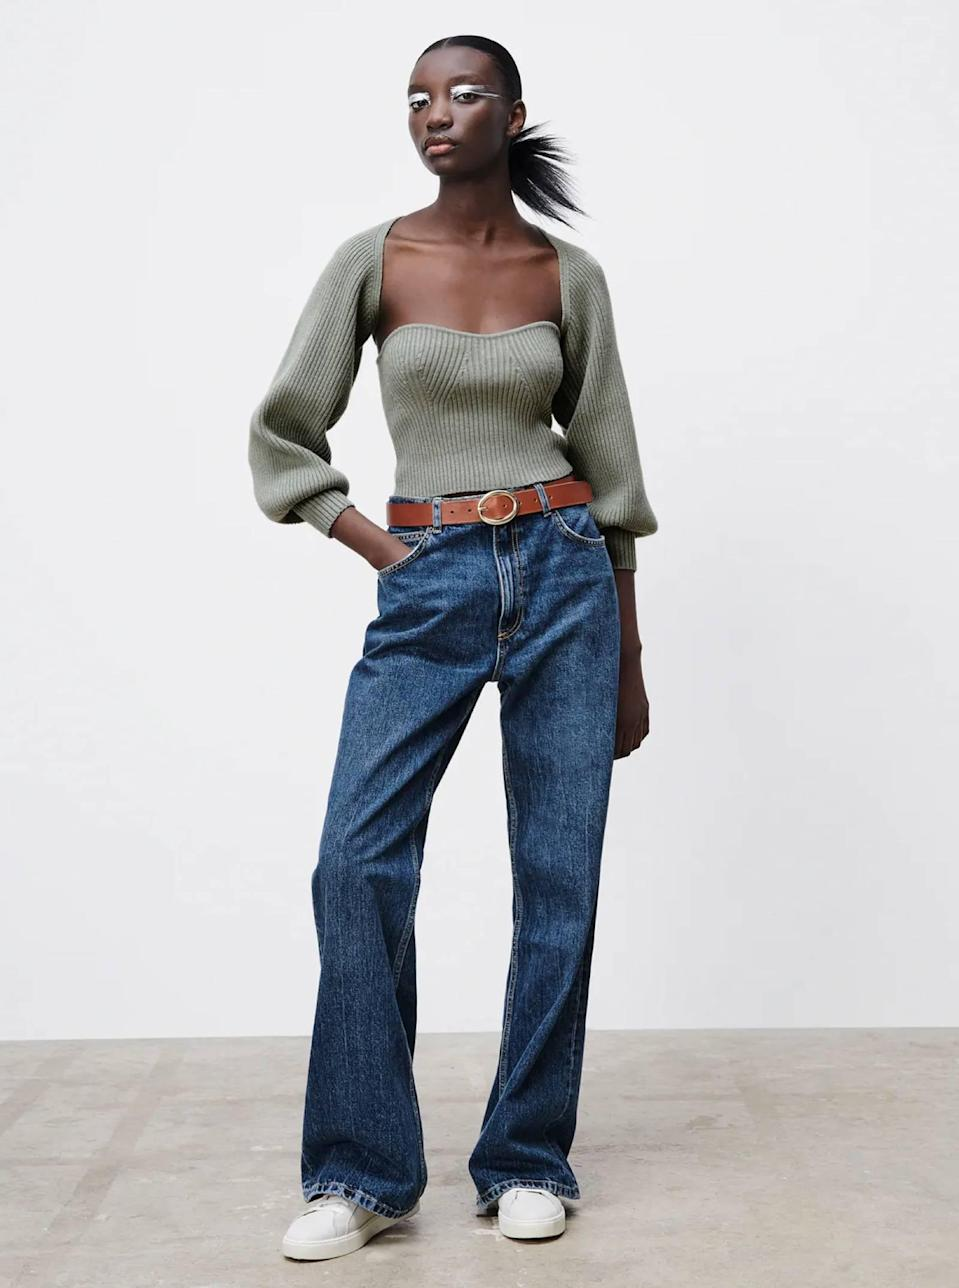 """If you love sweater sets, here's the bolero version—and the bandeau-style top creates a blank canvas for accessorizing with <a href=""""https://www.glamour.com/gallery/missoma-jewelry-what-to-buy?mbid=synd_yahoo_rss"""" rel=""""nofollow noopener"""" target=""""_blank"""" data-ylk=""""slk:chains"""" class=""""link rapid-noclick-resp"""">chains</a> or <a href=""""https://www.glamour.com/gallery/mismatched-earring-trend?mbid=synd_yahoo_rss"""" rel=""""nofollow noopener"""" target=""""_blank"""" data-ylk=""""slk:mismatched earrings"""" class=""""link rapid-noclick-resp"""">mismatched earrings</a>. $30, Zara. <a href=""""https://www.zara.com/us/en/knit-arm-warmer-sweater-p05536159.html"""" rel=""""nofollow noopener"""" target=""""_blank"""" data-ylk=""""slk:Get it now!"""" class=""""link rapid-noclick-resp"""">Get it now!</a>"""